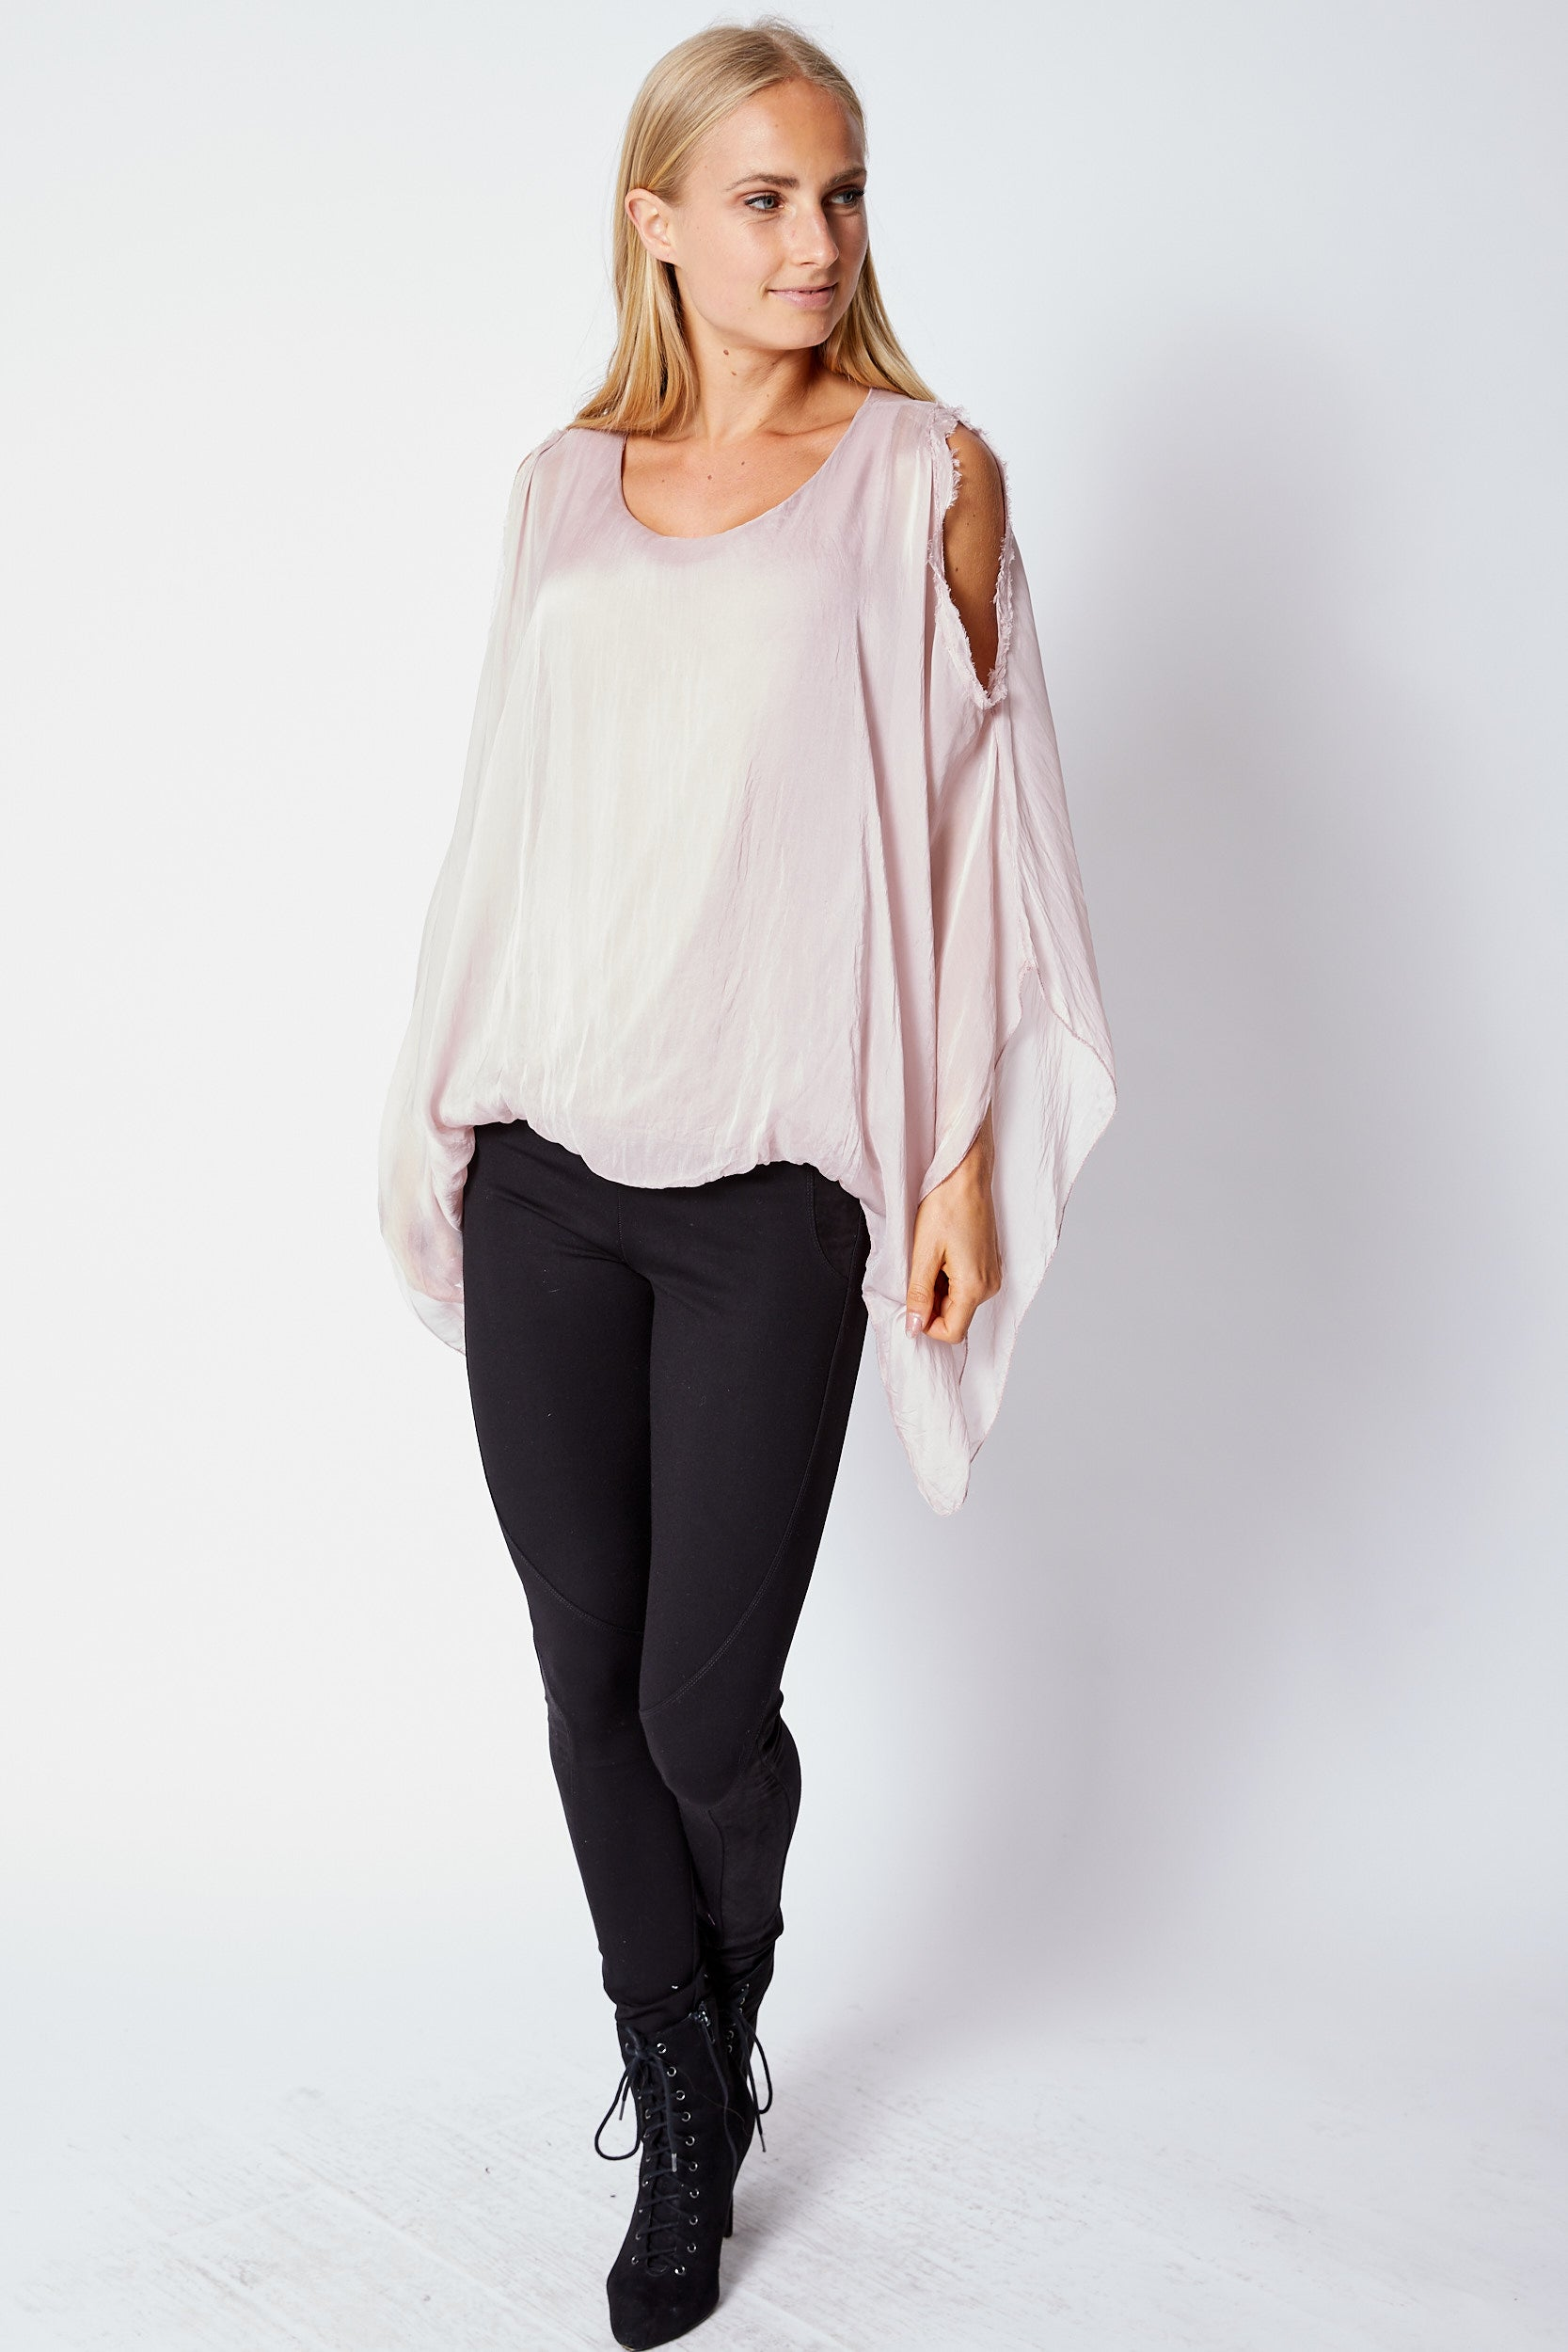 Italian Silk Cold Should Top - Jacqueline B Clothing